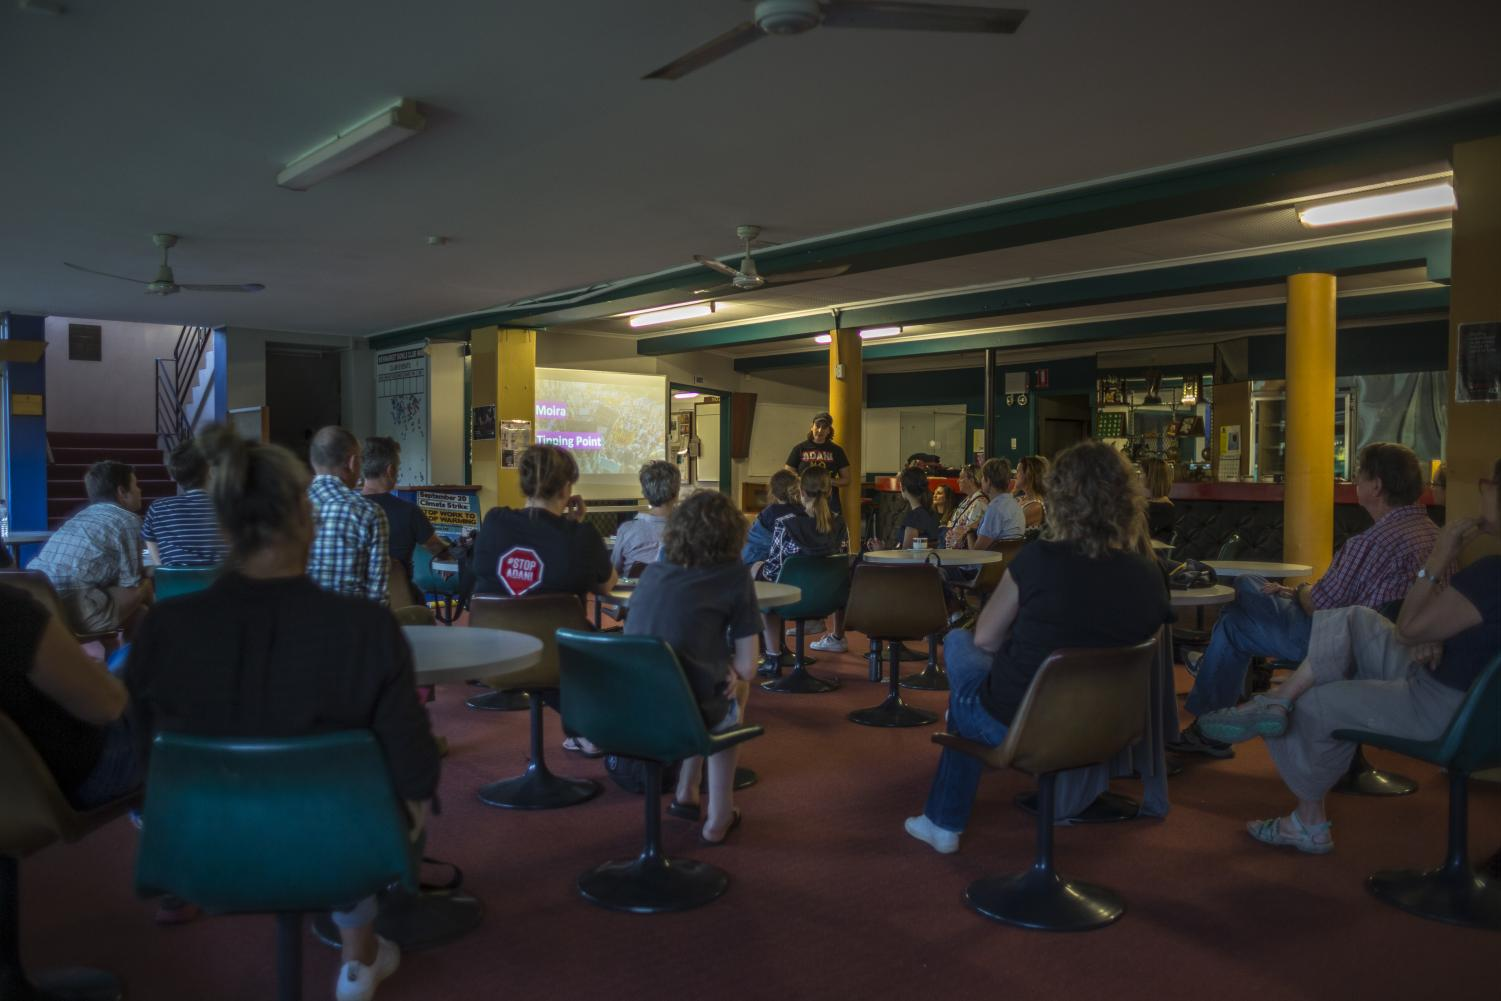 The crowd attending the Stop Adani information briefing at the Newmarket bowls club in early September.